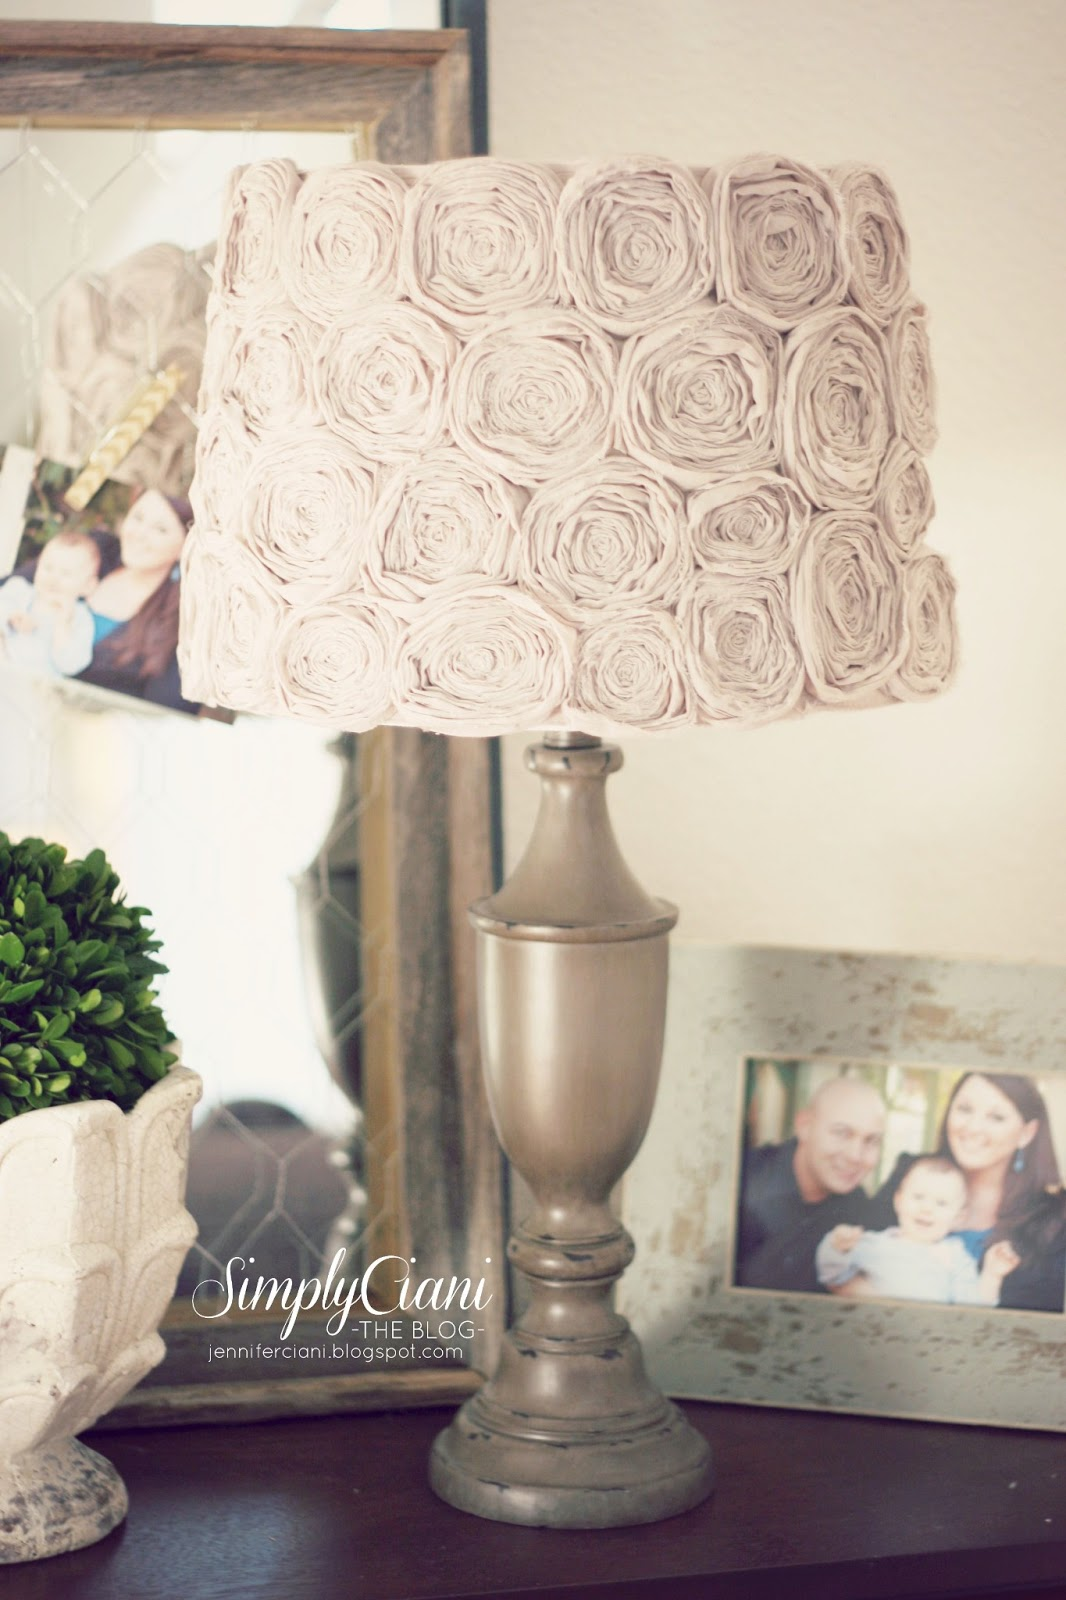 Diy shabby chic rosette lamp shade simply ciani - Diy lamp shade ...